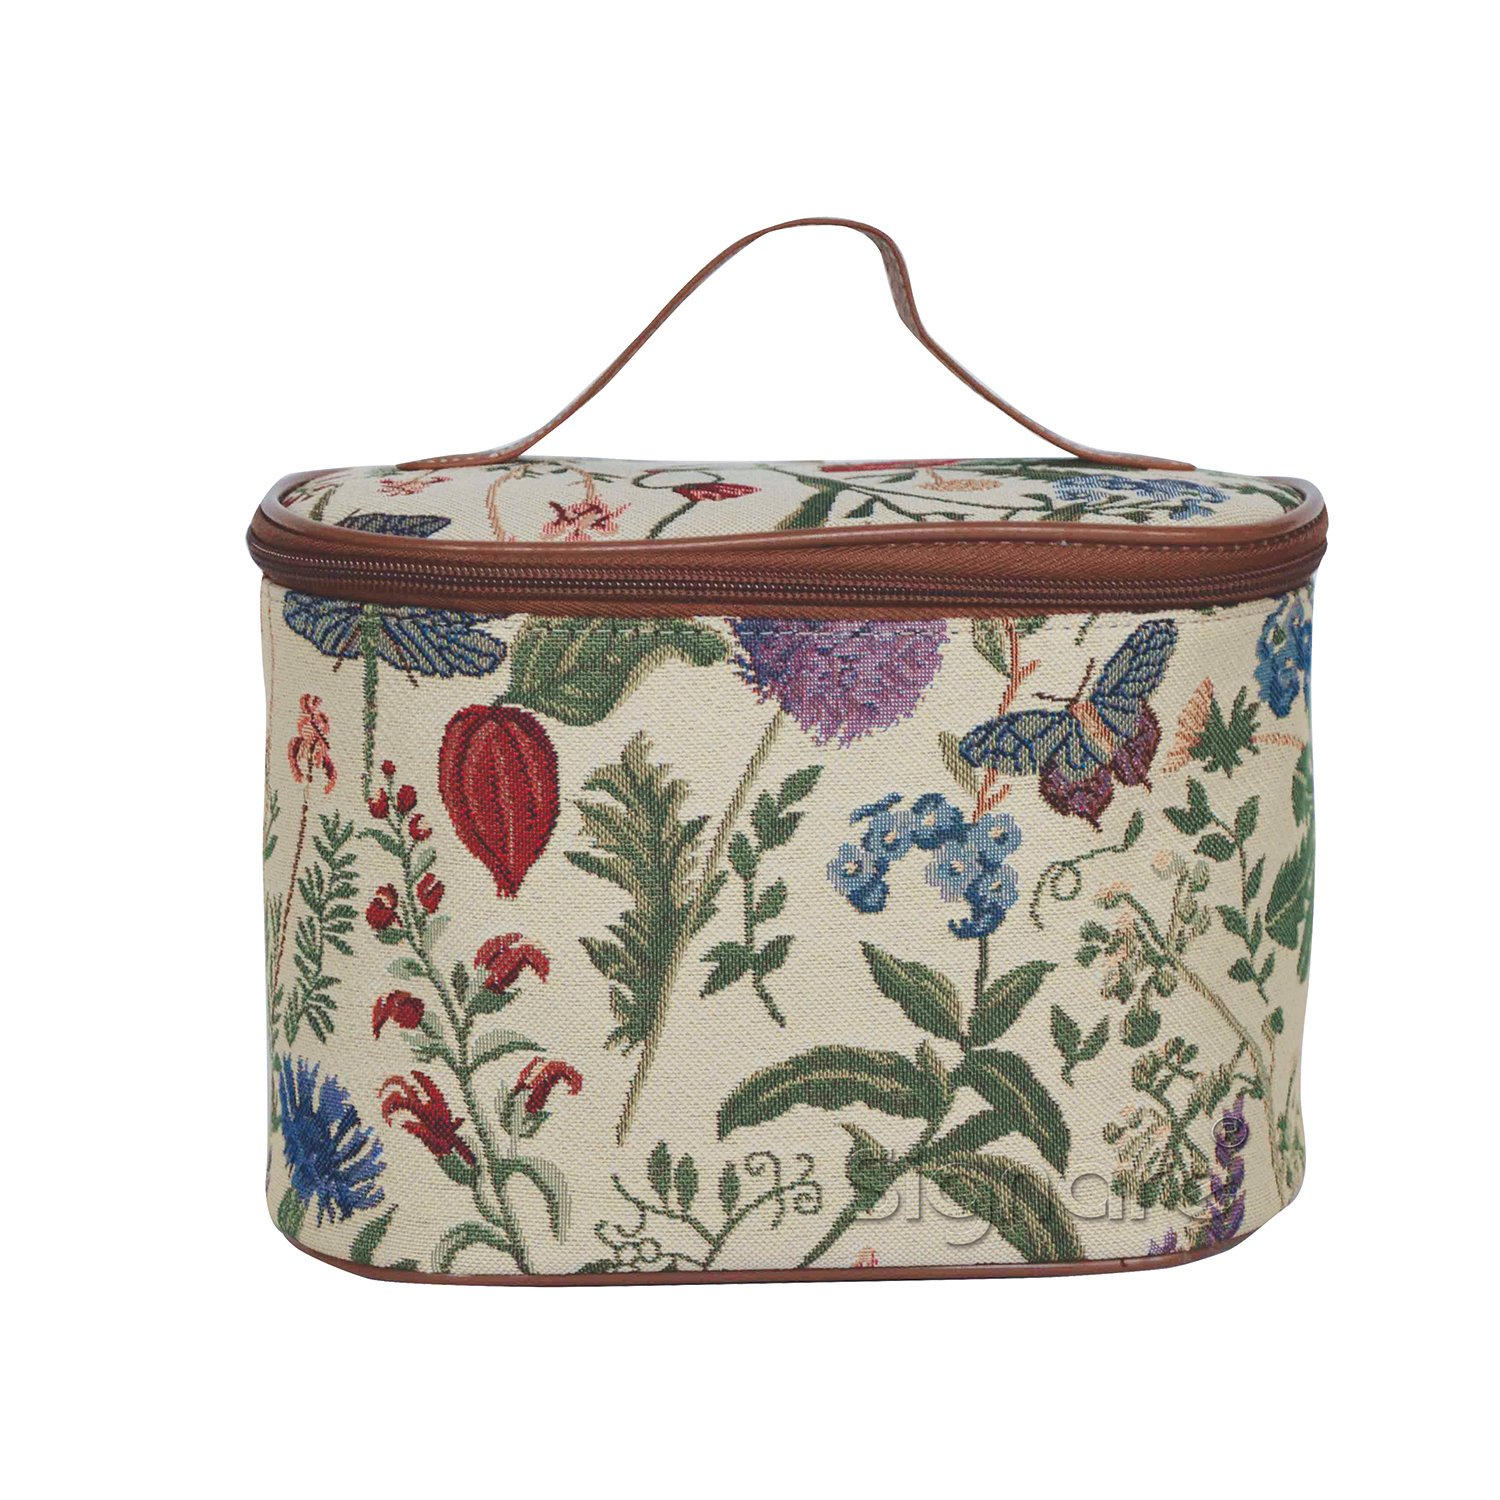 Ladies Garden Flower Round Large Cosmetic Bag Travel Makeup Organiser Case with Handle Holder with Sunflower Poppy Butterfly Dragonfly by Signare (TOIL-MGD)